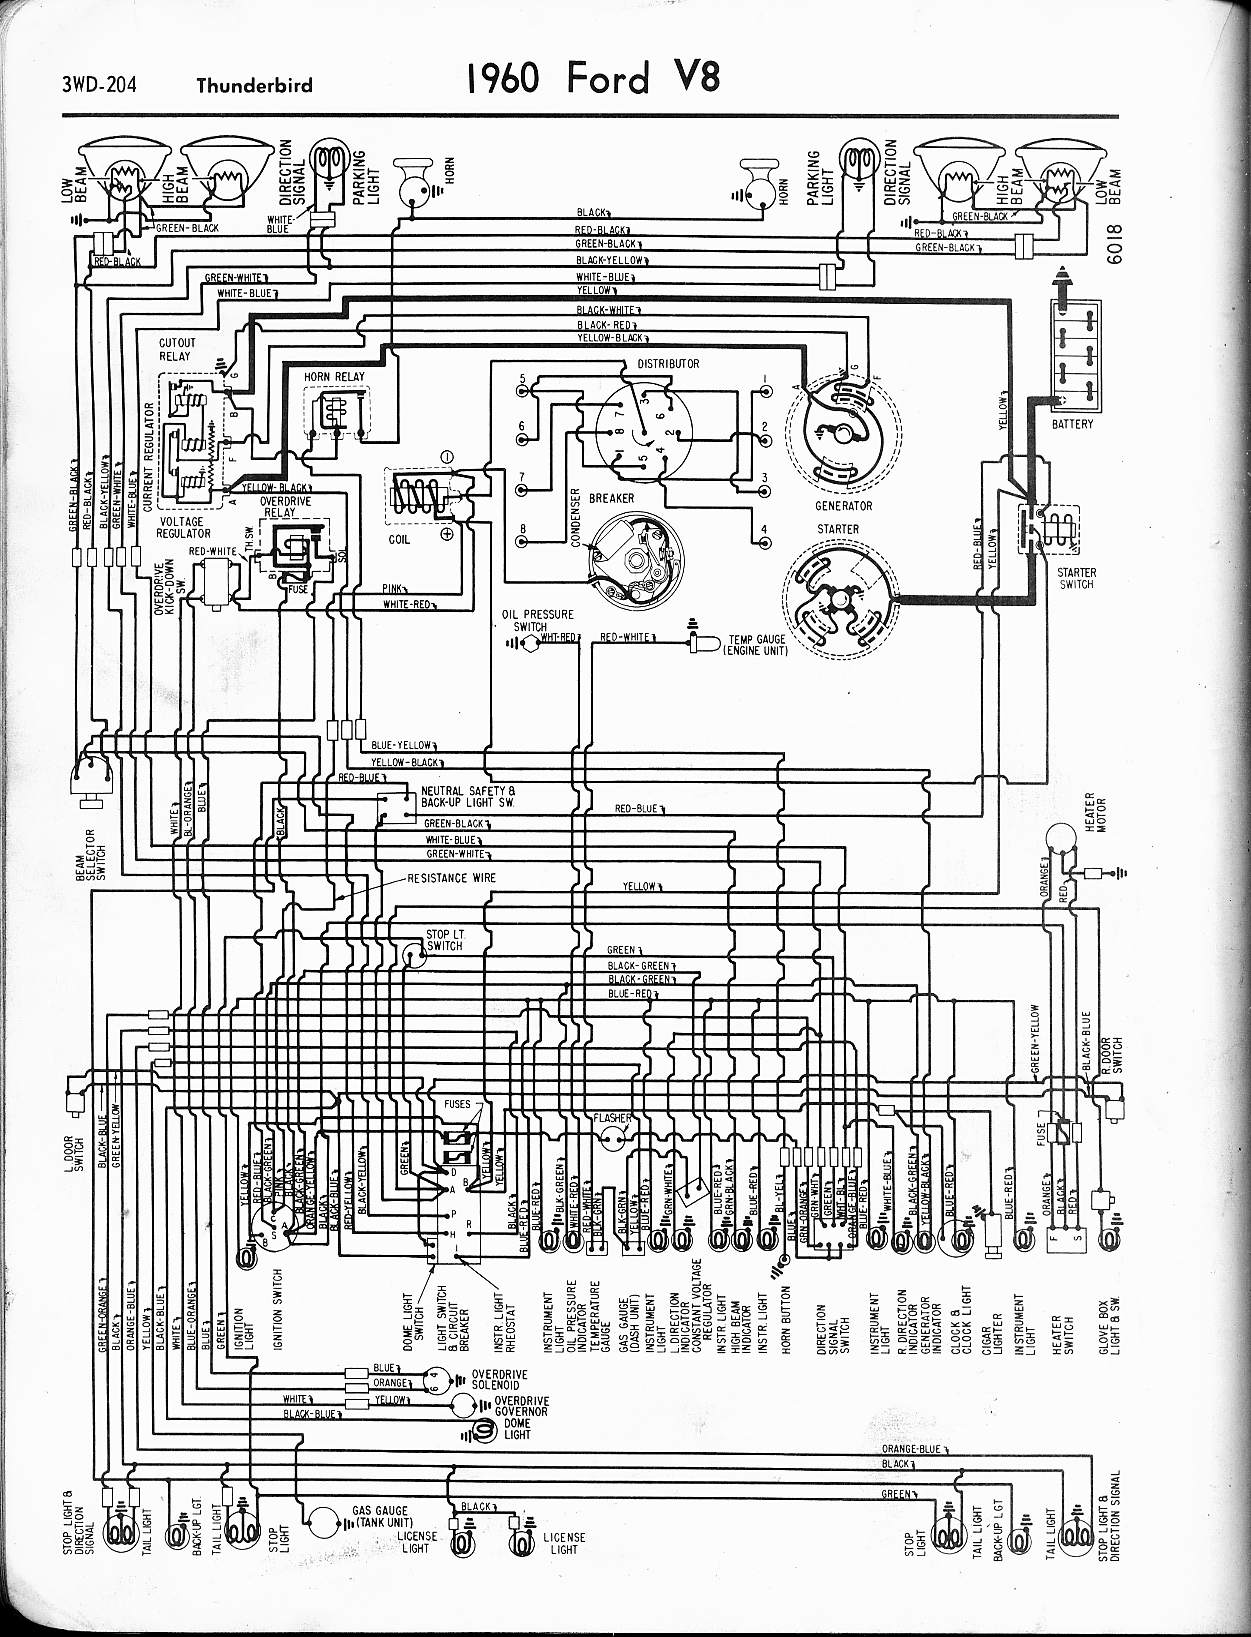 MWire5765 204 57 65 ford wiring diagrams 1960 ford f100 wiring diagram at bayanpartner.co